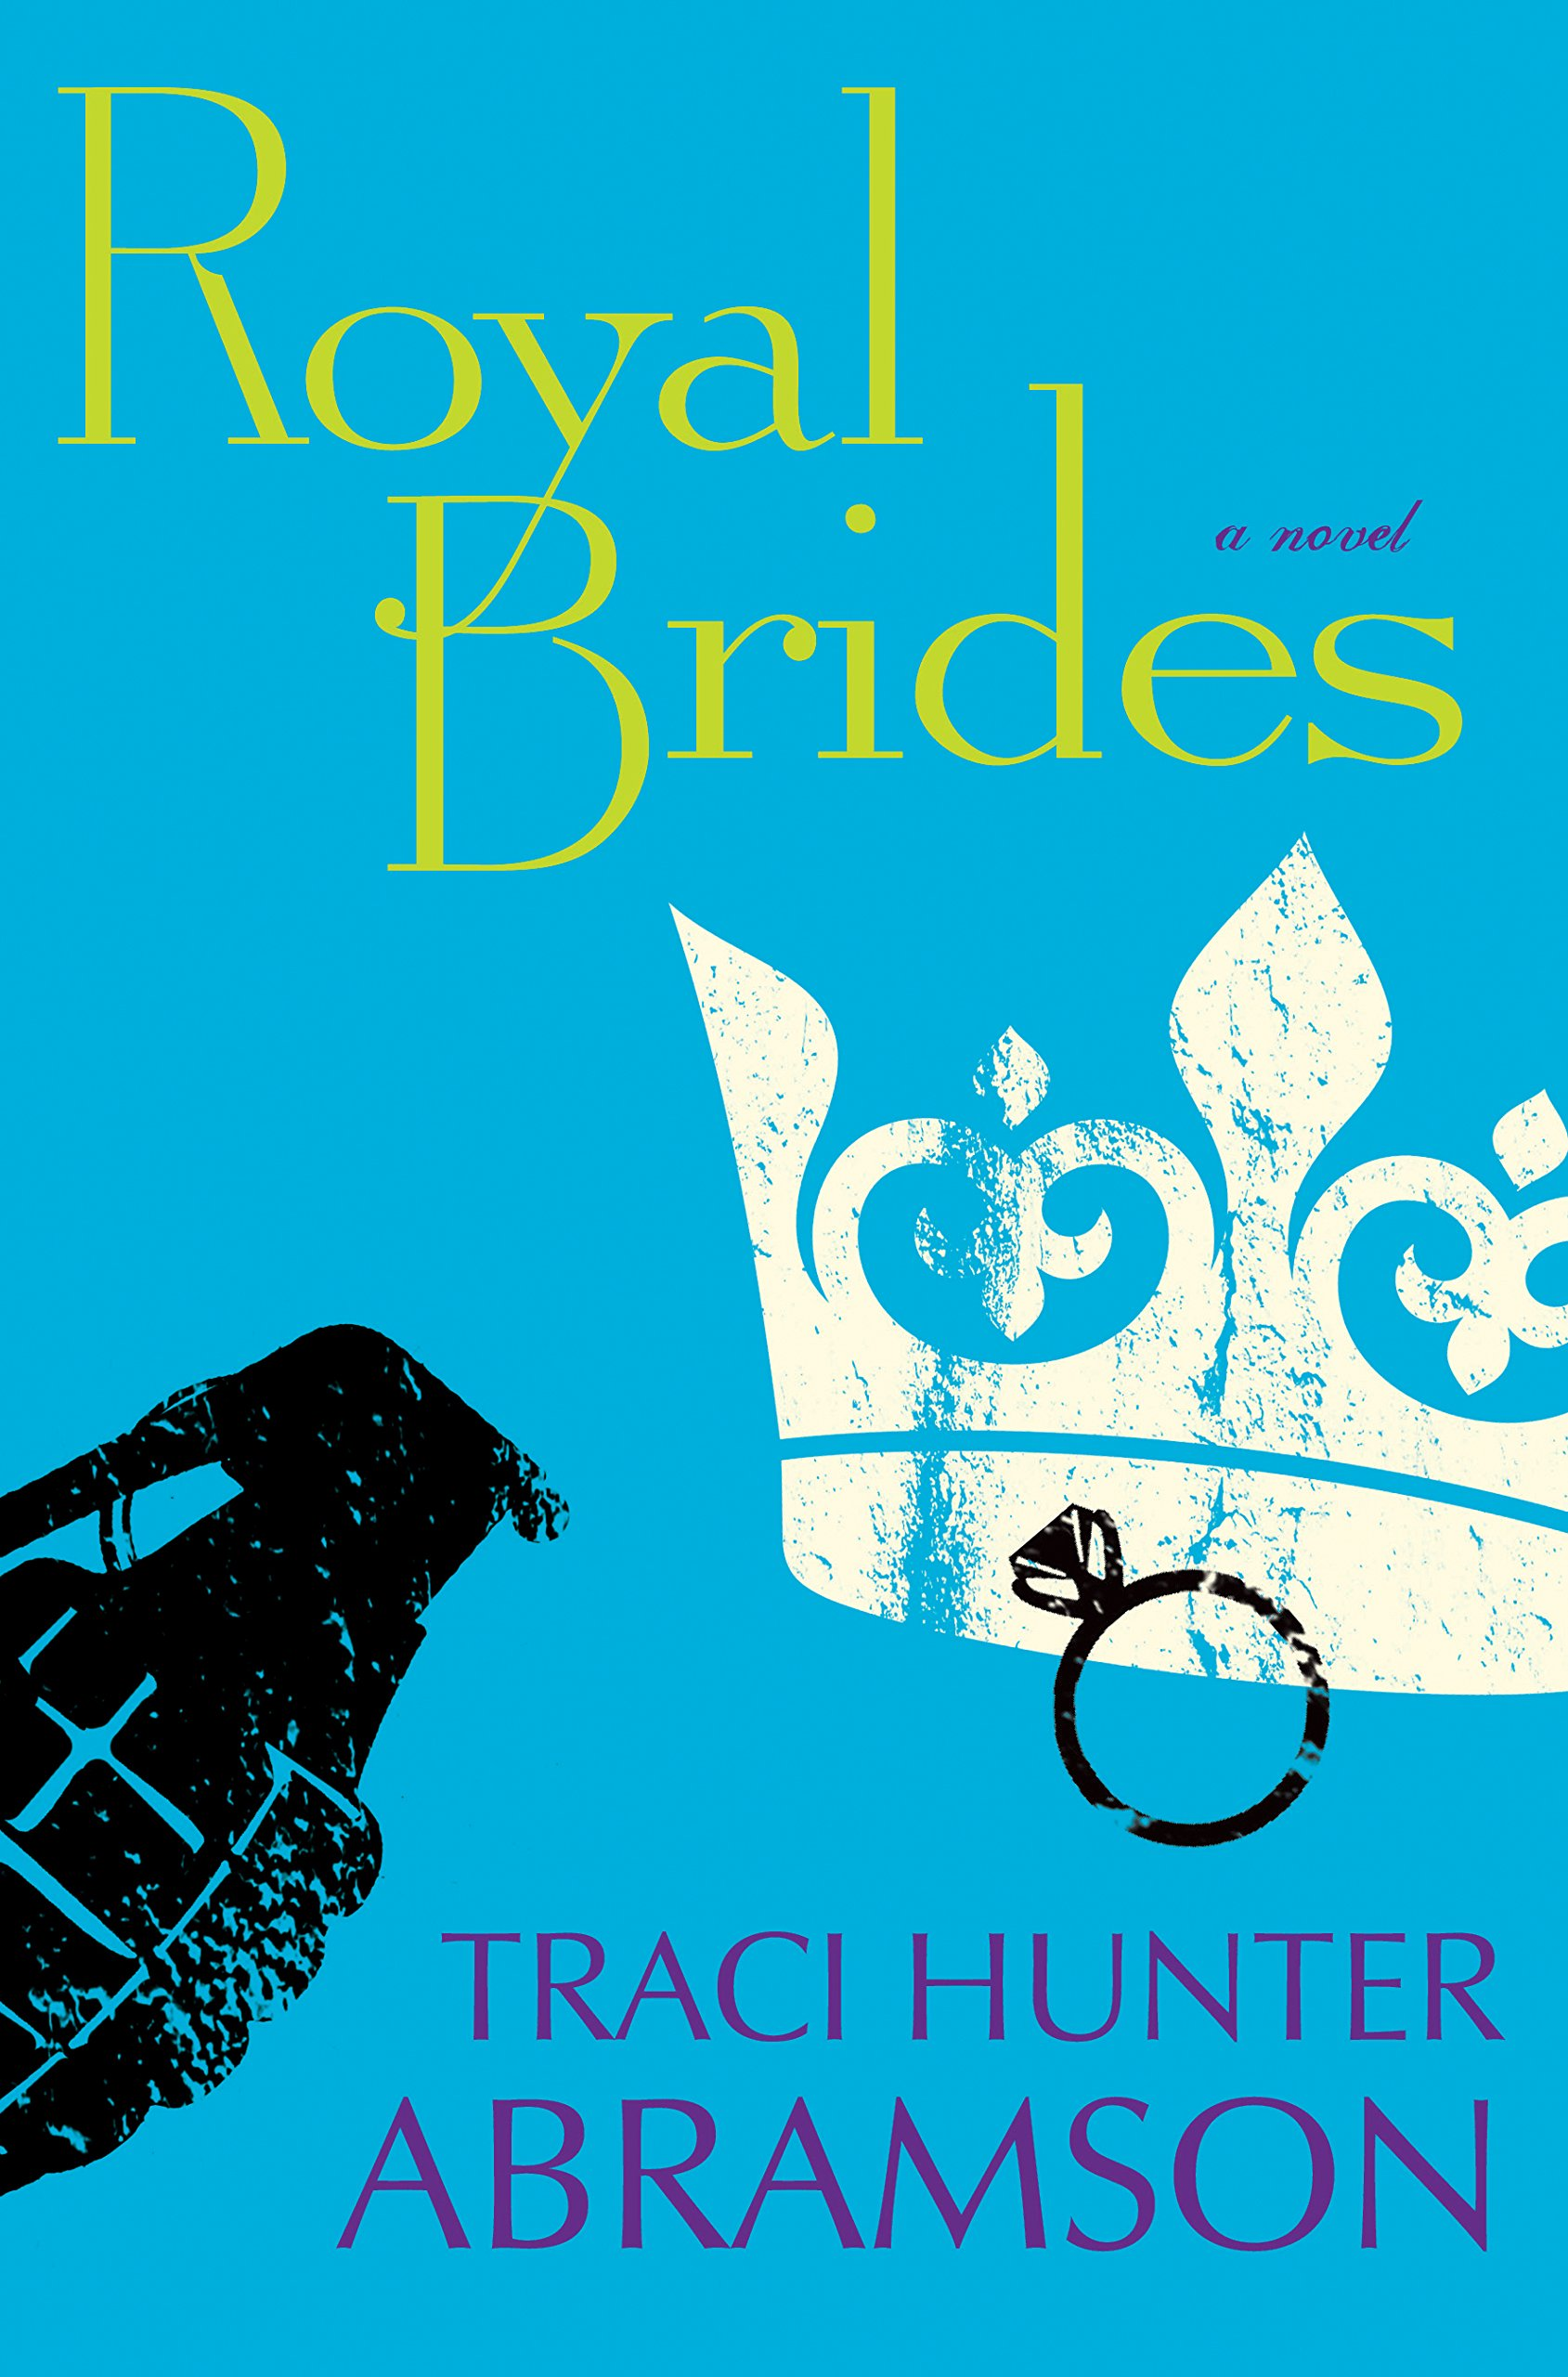 Royal brides traci hunter abramson 9781524400071 amazon books fandeluxe Ebook collections